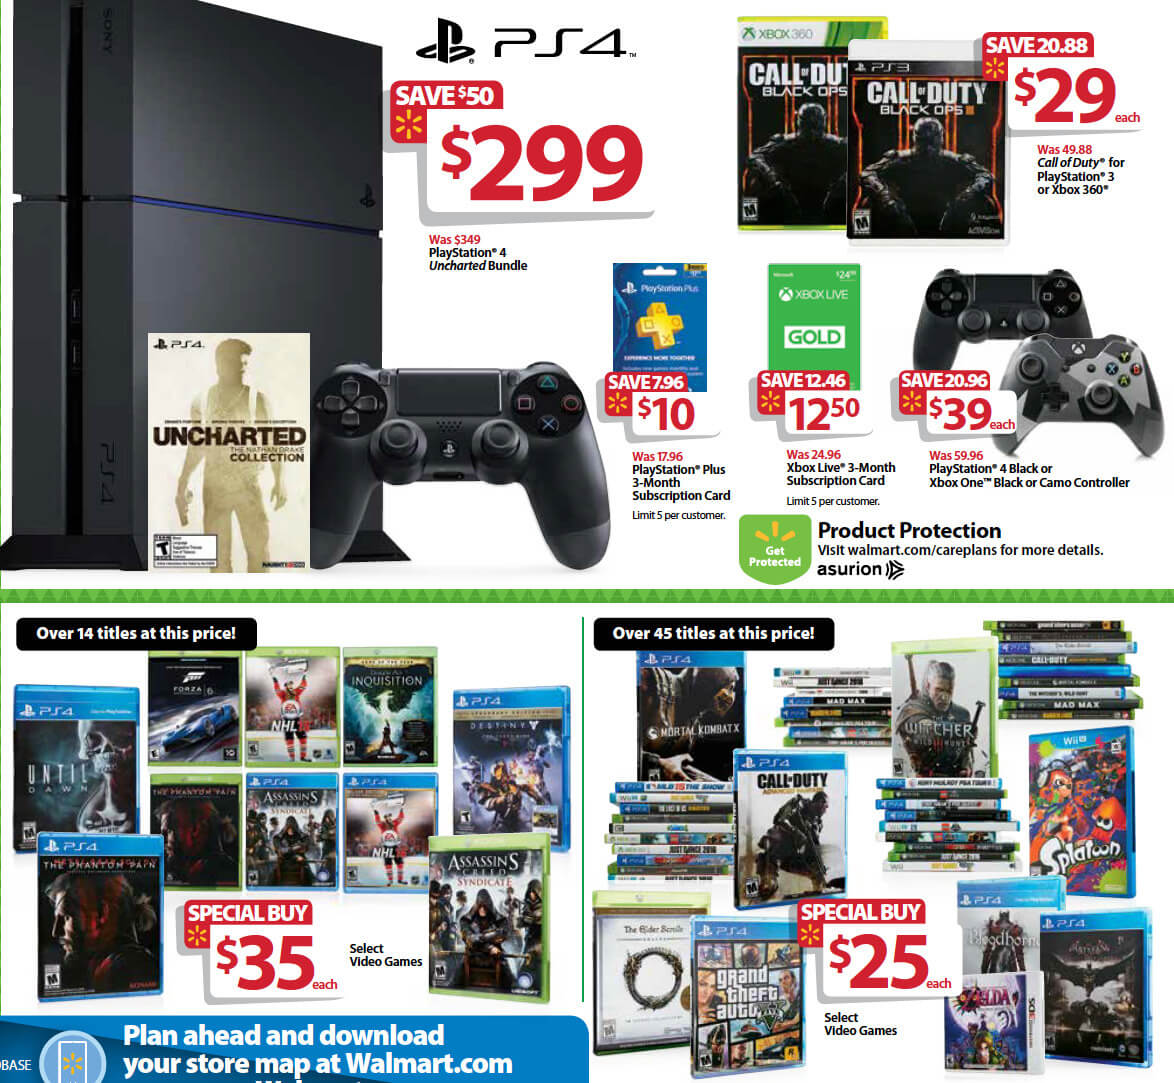 Black Friday: Best Wii U, 3DS, Xbox One, and PS4 Deals